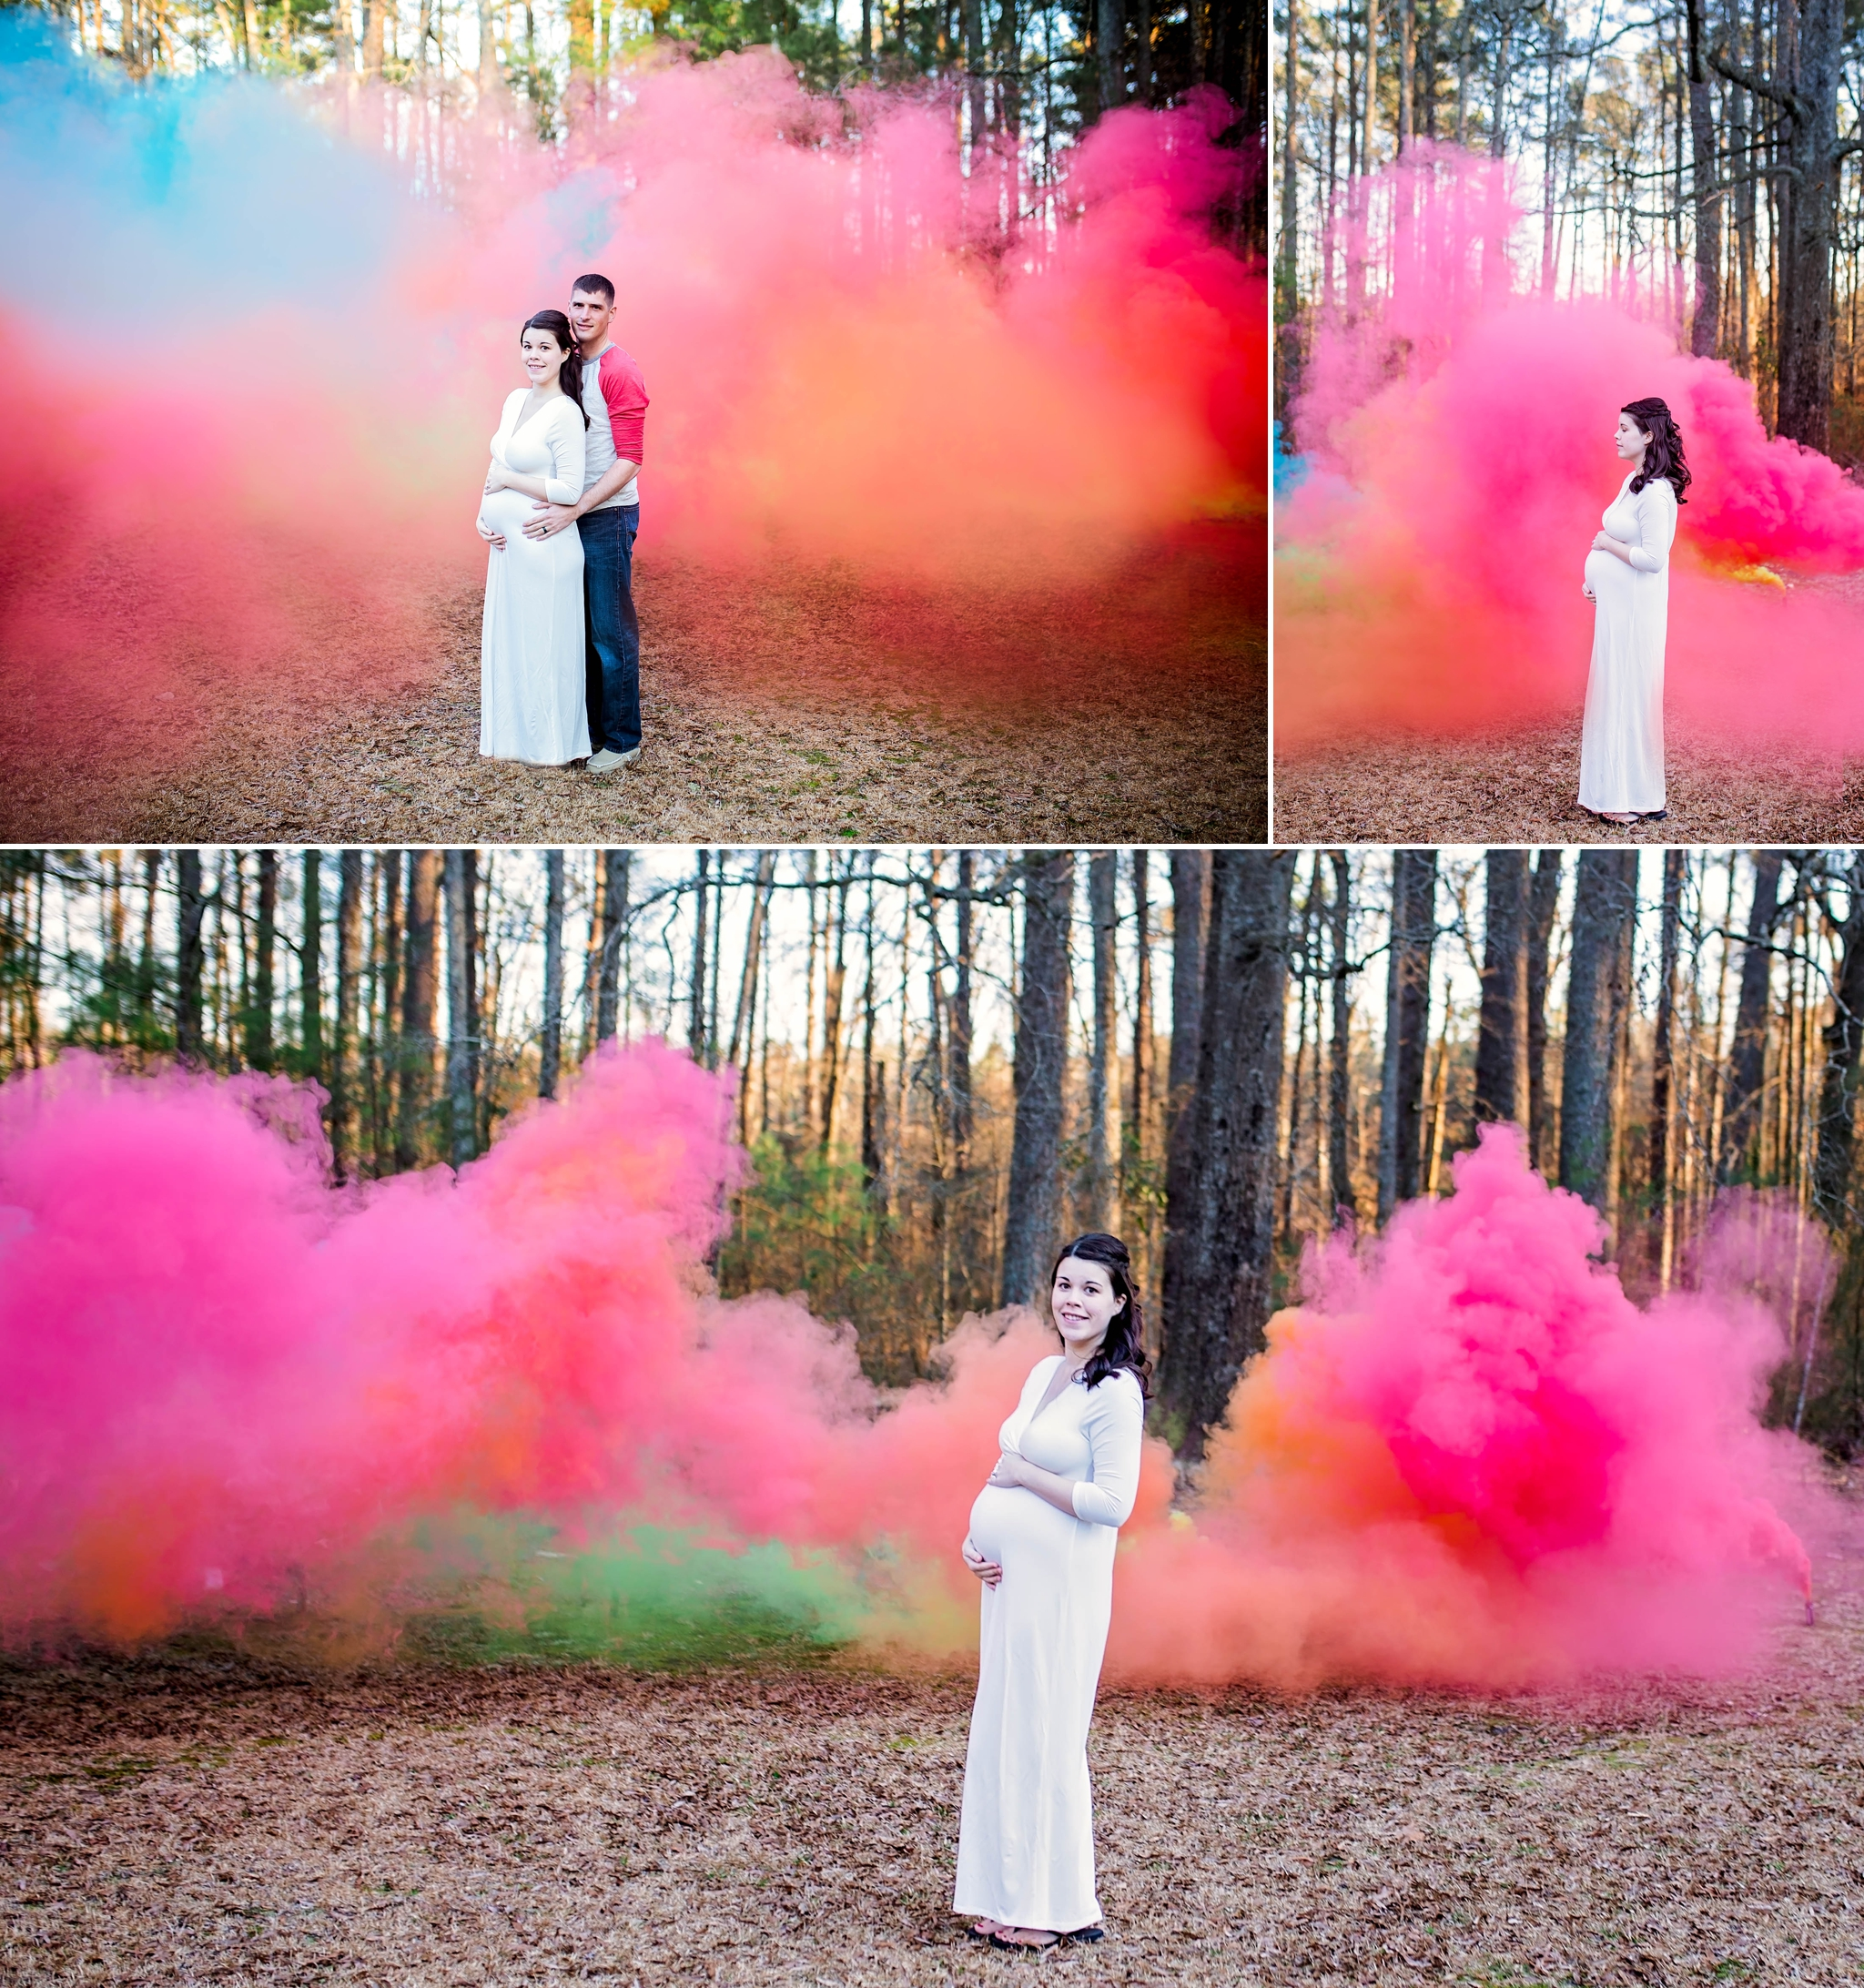 303b460ae6 Rainbow Baby Maternity Photography Session with Smoke Bombs in Fayetteville  North Carolina